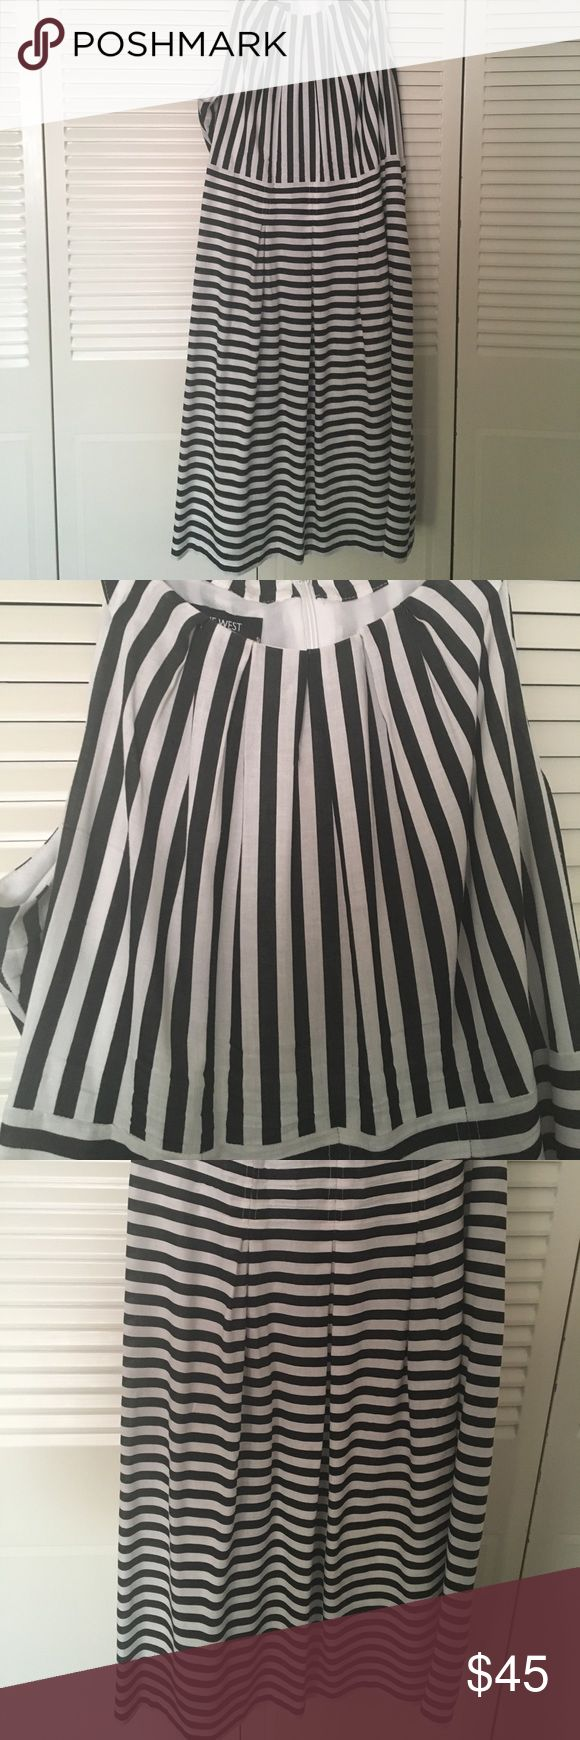 Black and white striped dress with pockets! Tea-length dress worn twice (once for under an hour). High neck that resembles a halter top, and no stains/damage/etc. Plus, it has functional pockets! Nine West Dresses Midi